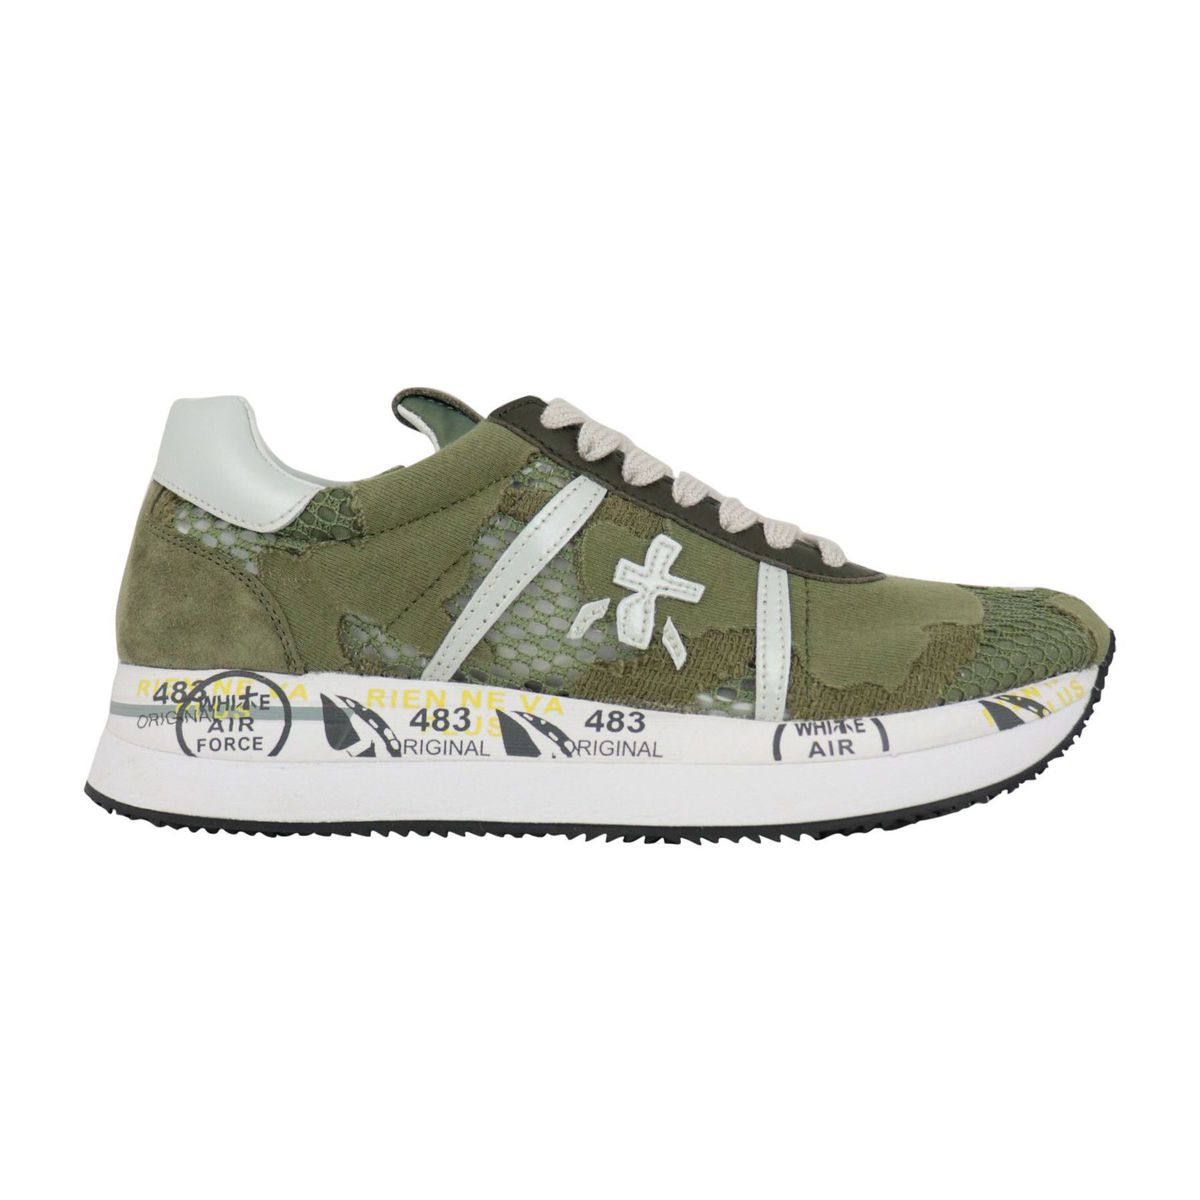 Conny sneakers in leather and lace effect fabric Military Premiata